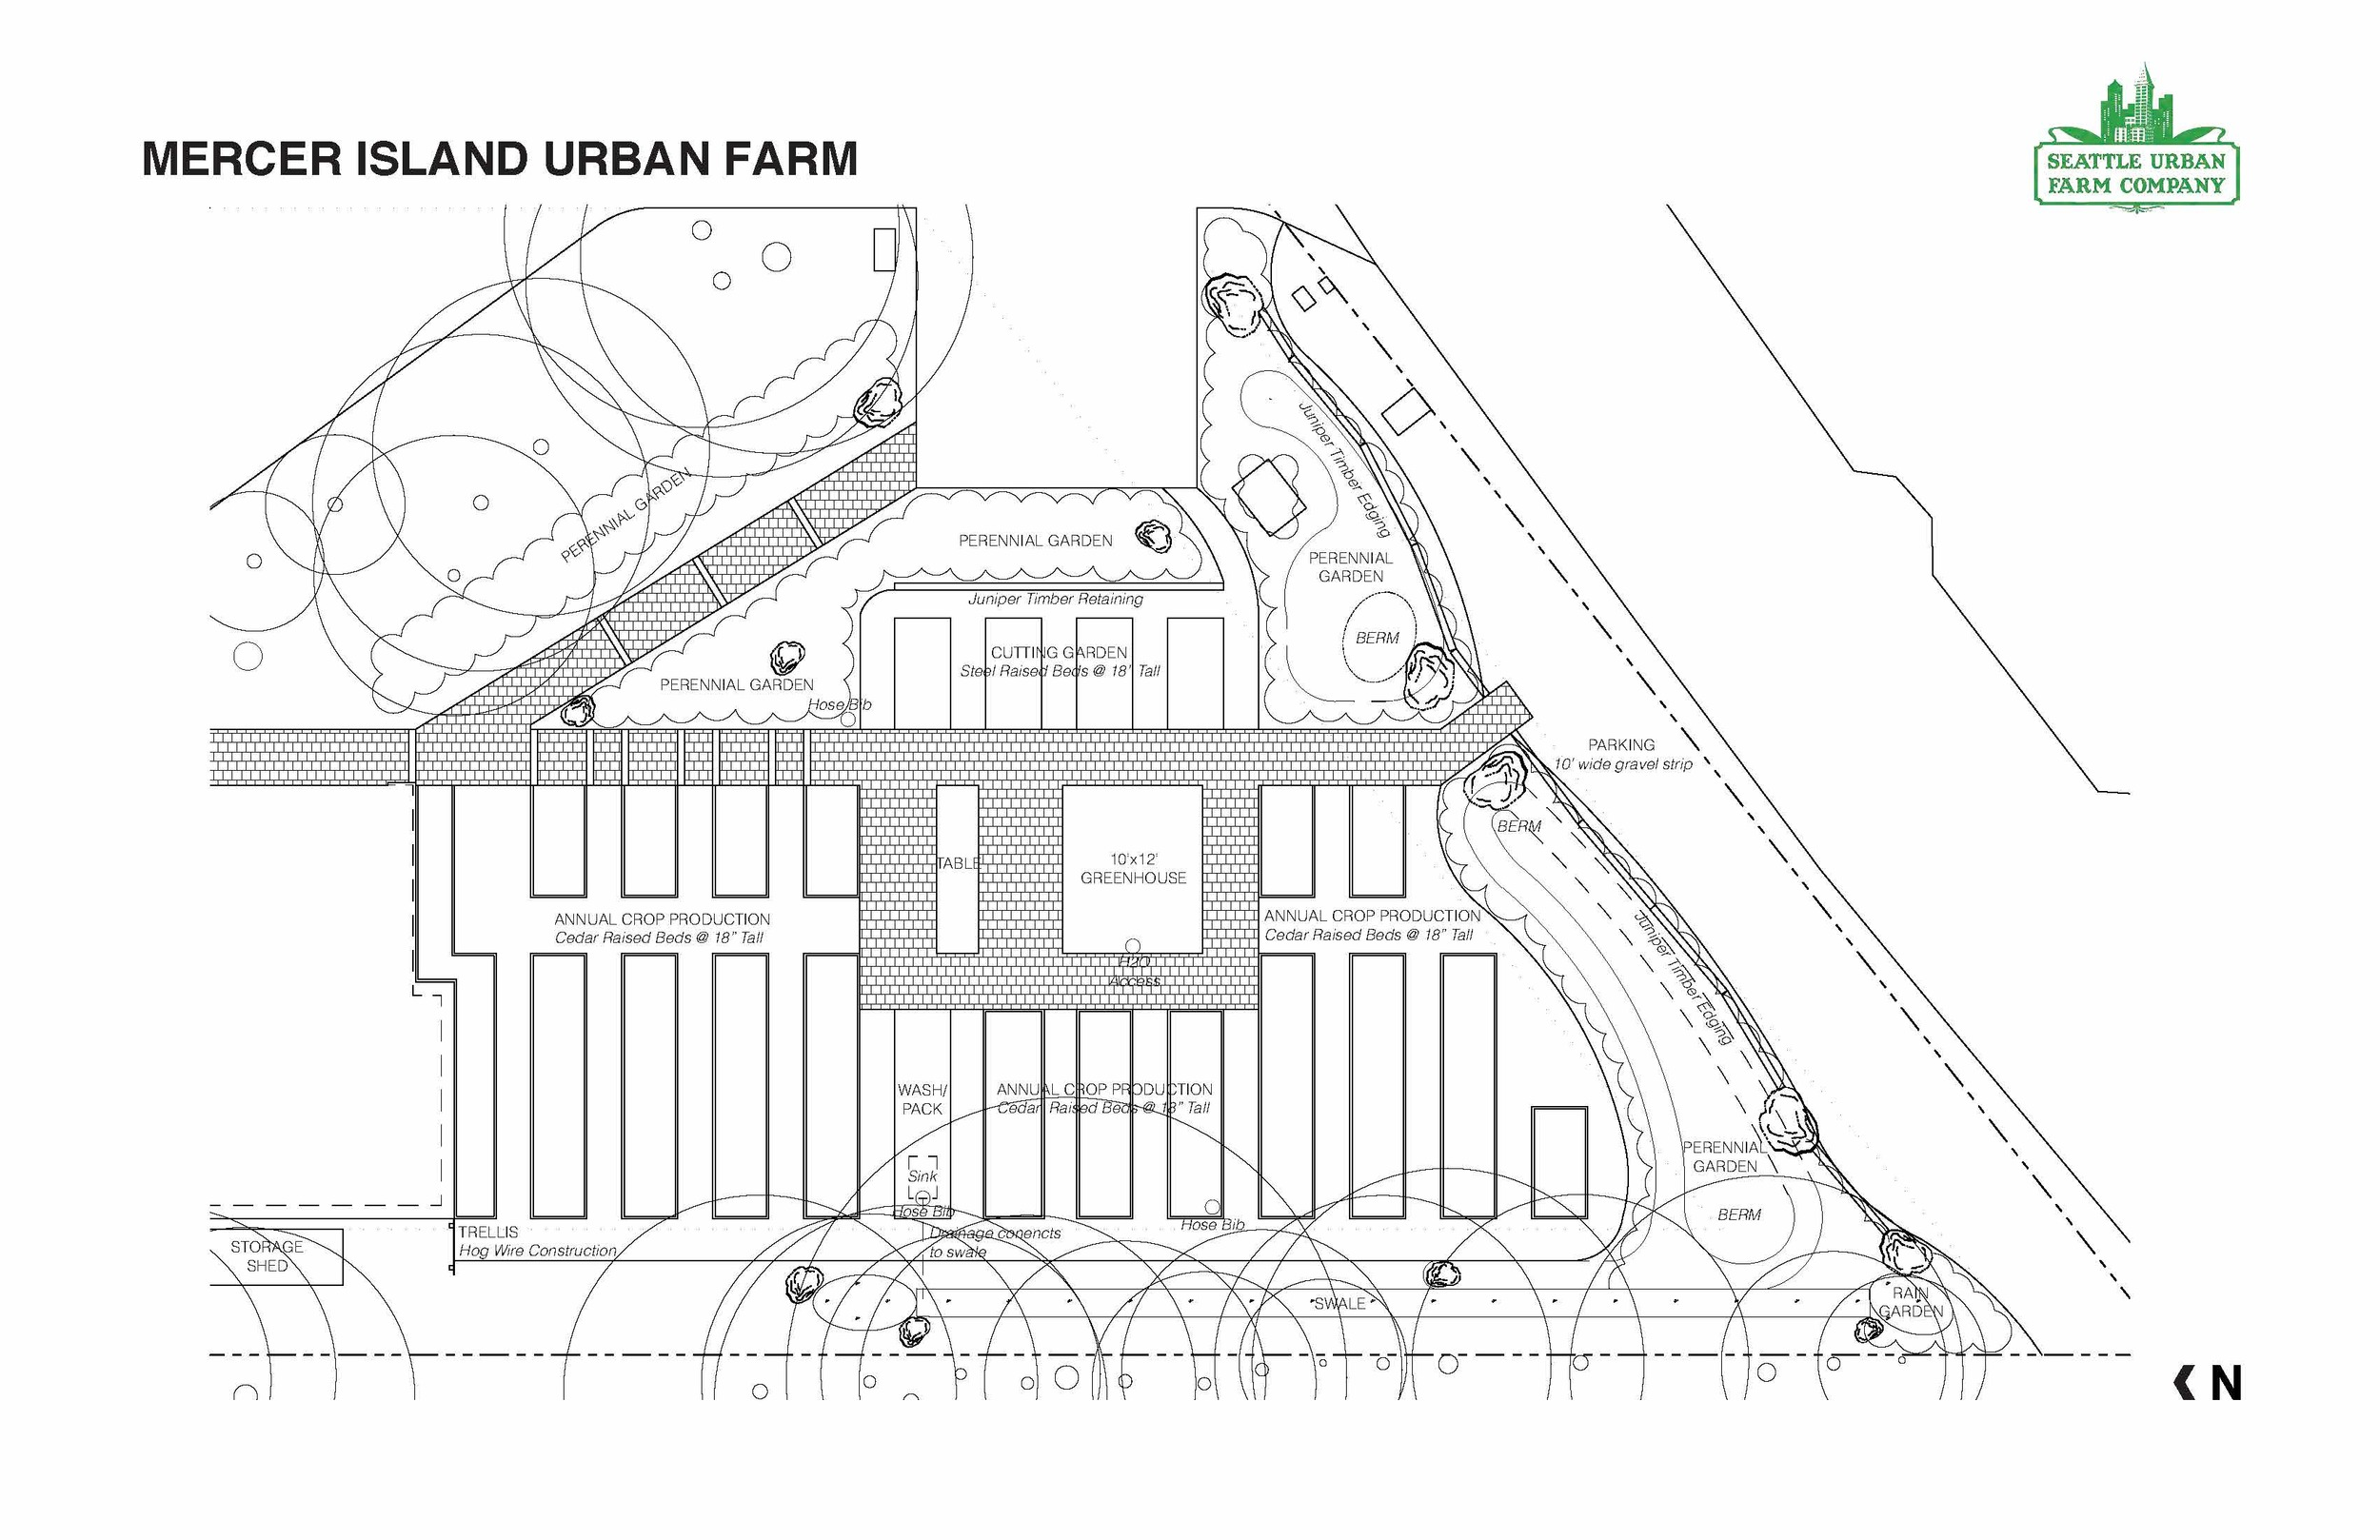 Mercer Island Urban Farm Plan_Seattle Urban Farm Co.